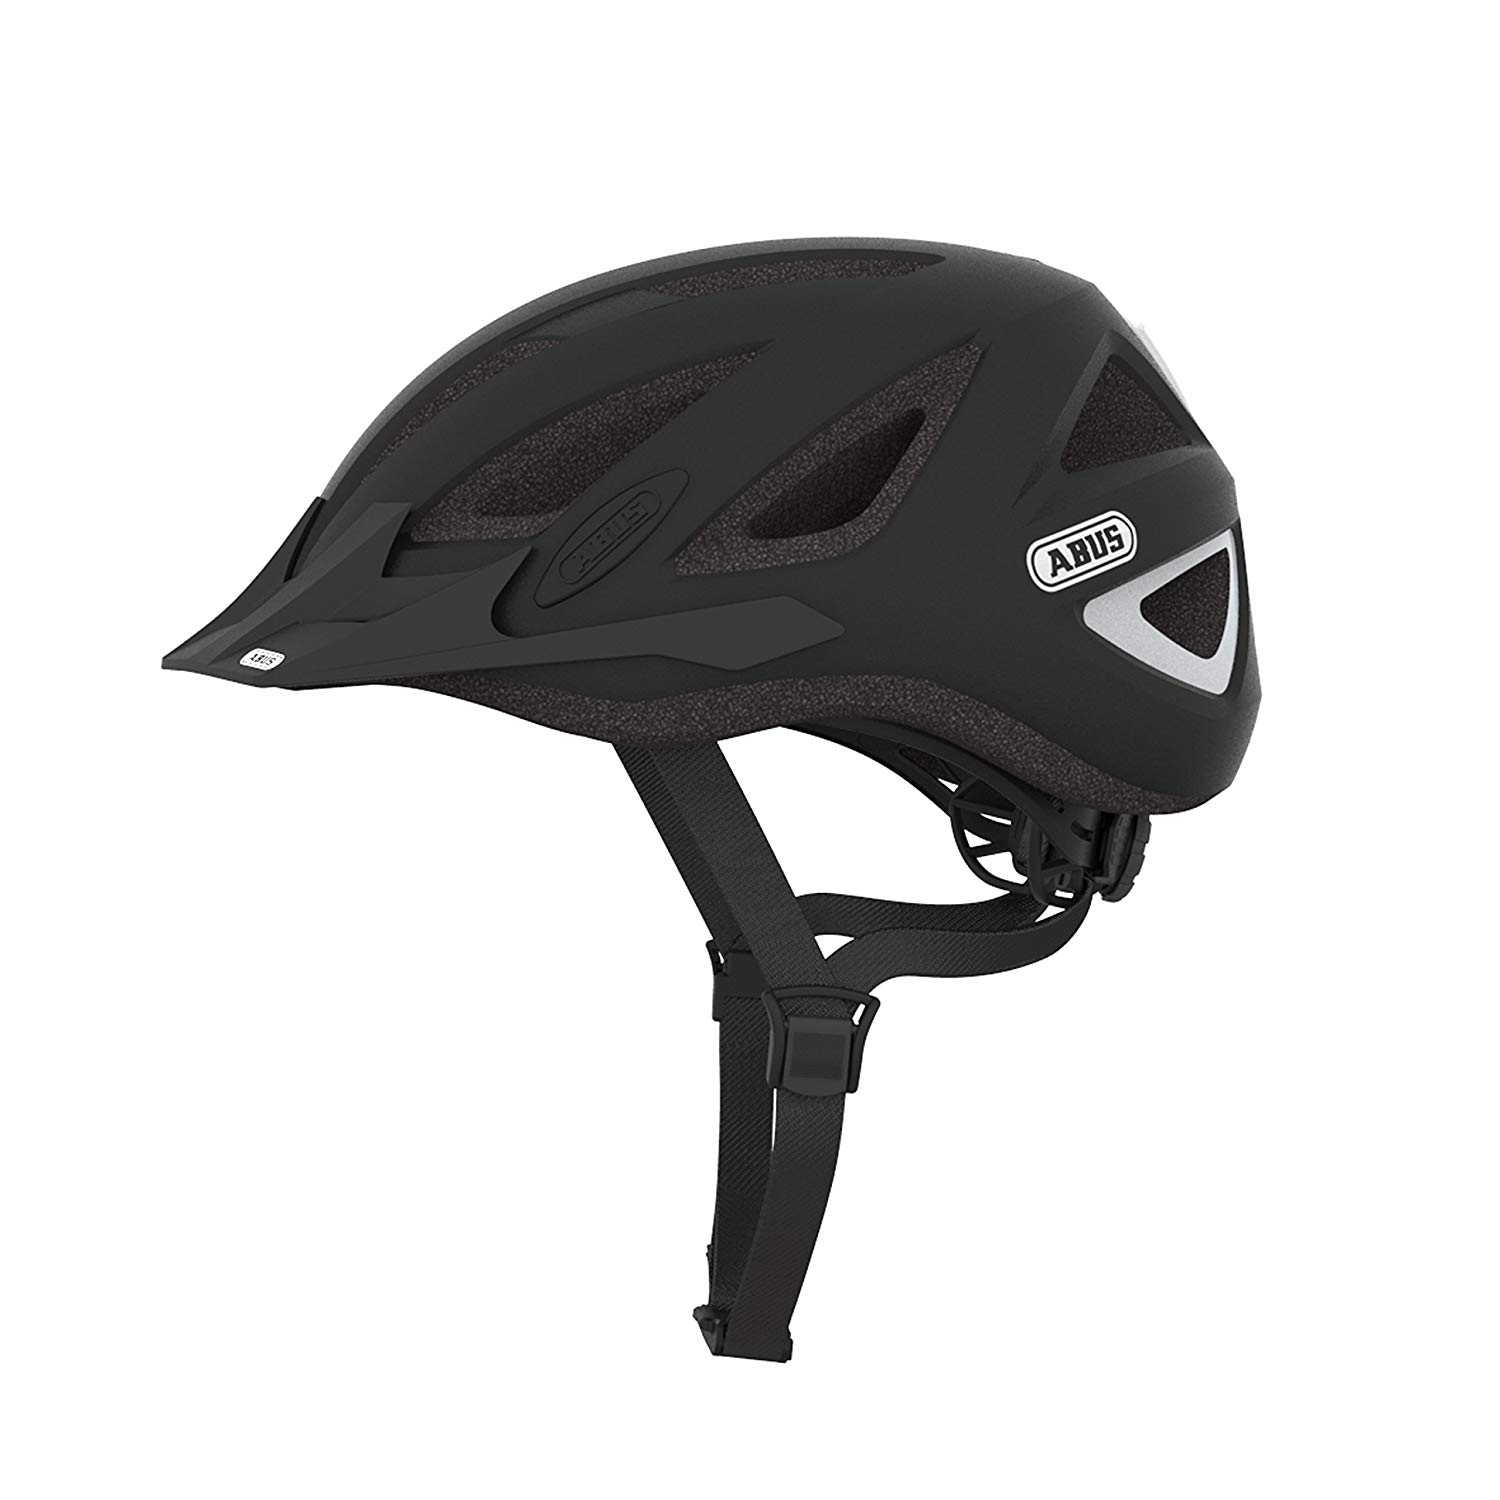 ABUS Urban-I V. 2 Bicycle Helmet Black Velvet Black Size:56-61 cm [Sports]